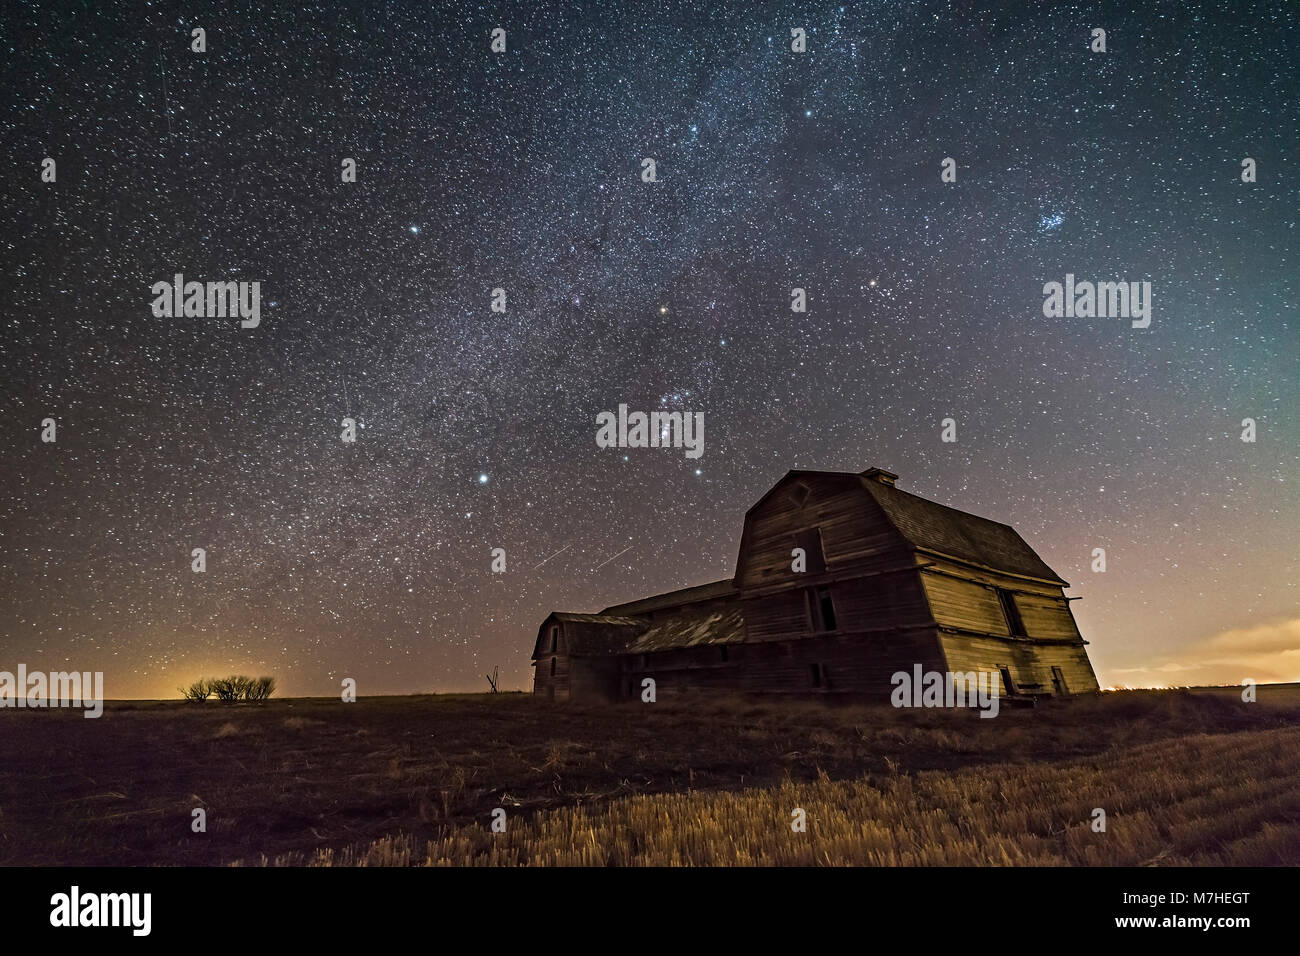 Orion and the winter Milky Way over an old barn in Alberta, Canada. Stock Photo